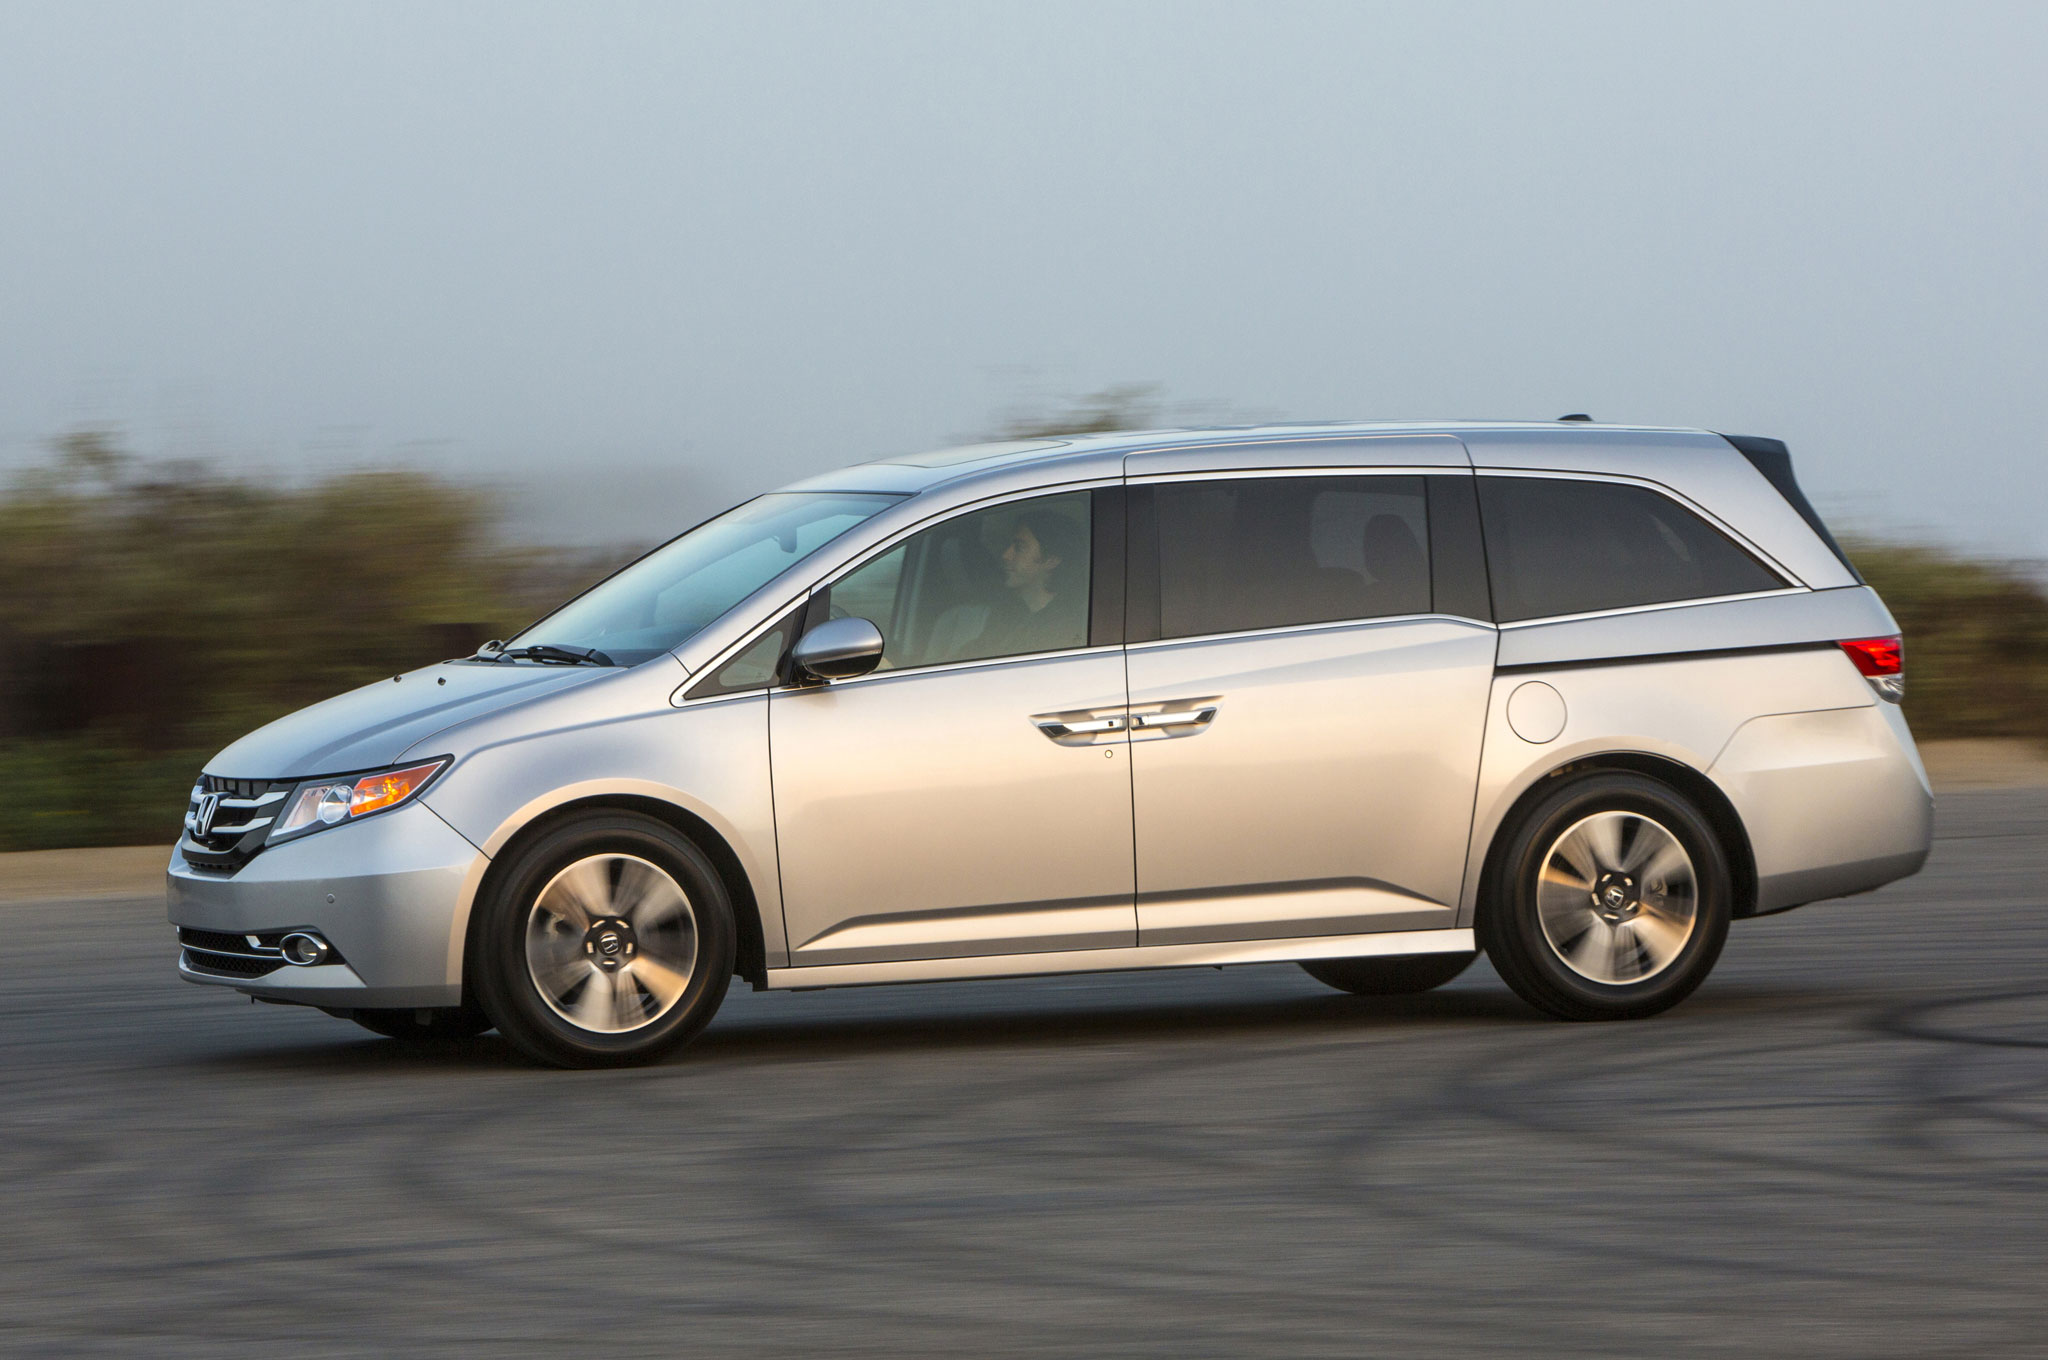 2016 honda odyssey adds se trim with more standard features for Should i buy a toyota sienna or honda odyssey